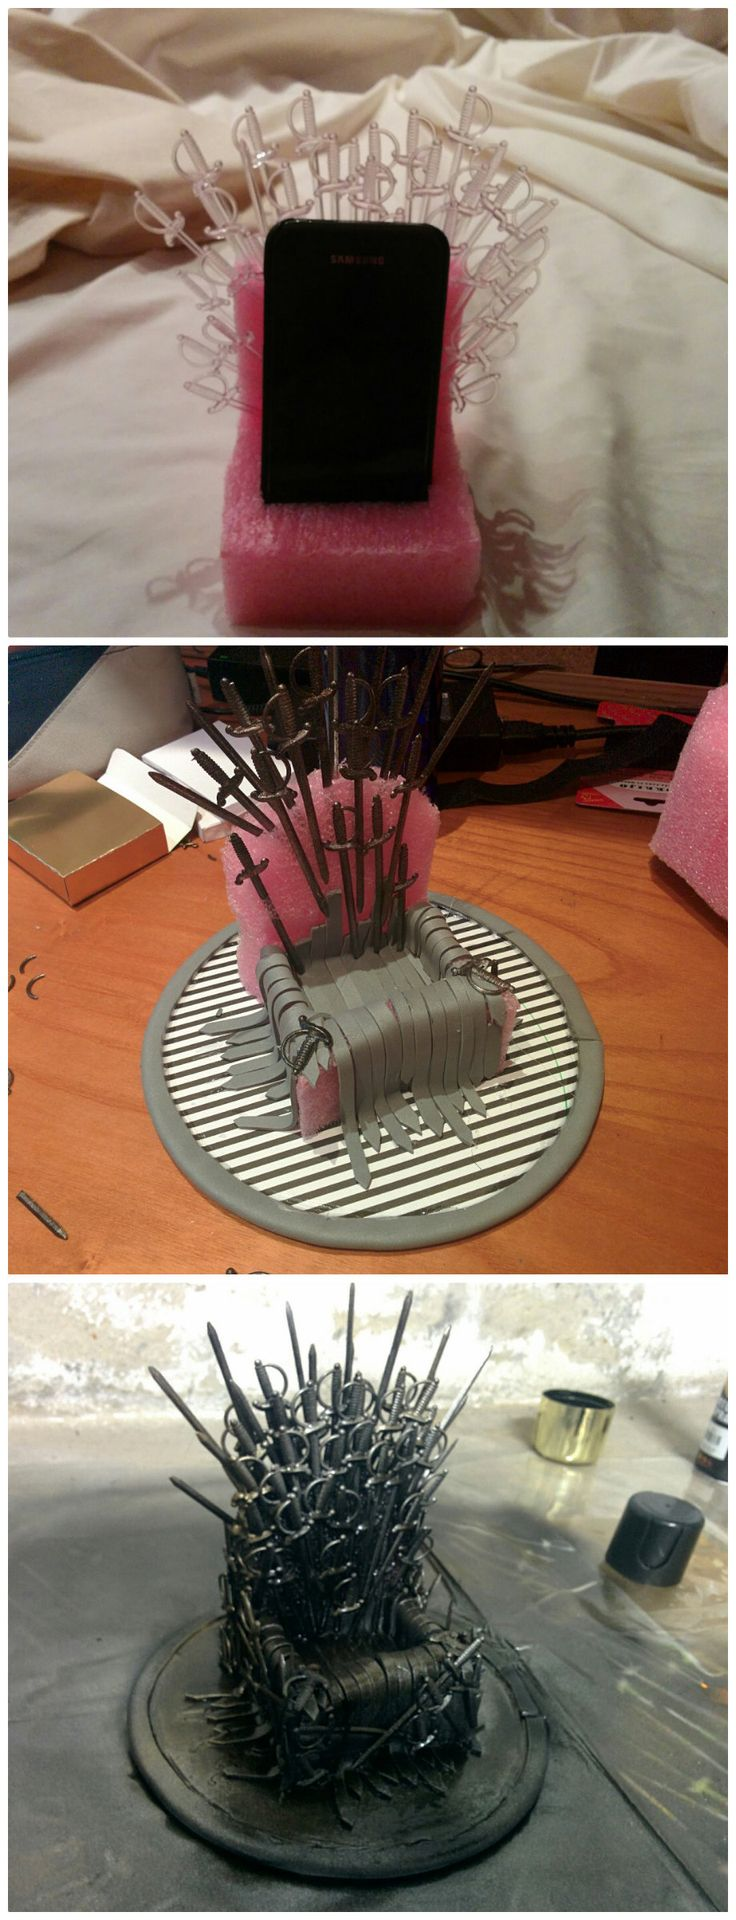 20 DIY Projects To Help Game of Thrones Fans Survive The Winter. I don't even like GoT but the phone holder one i would do just for fun! so cool